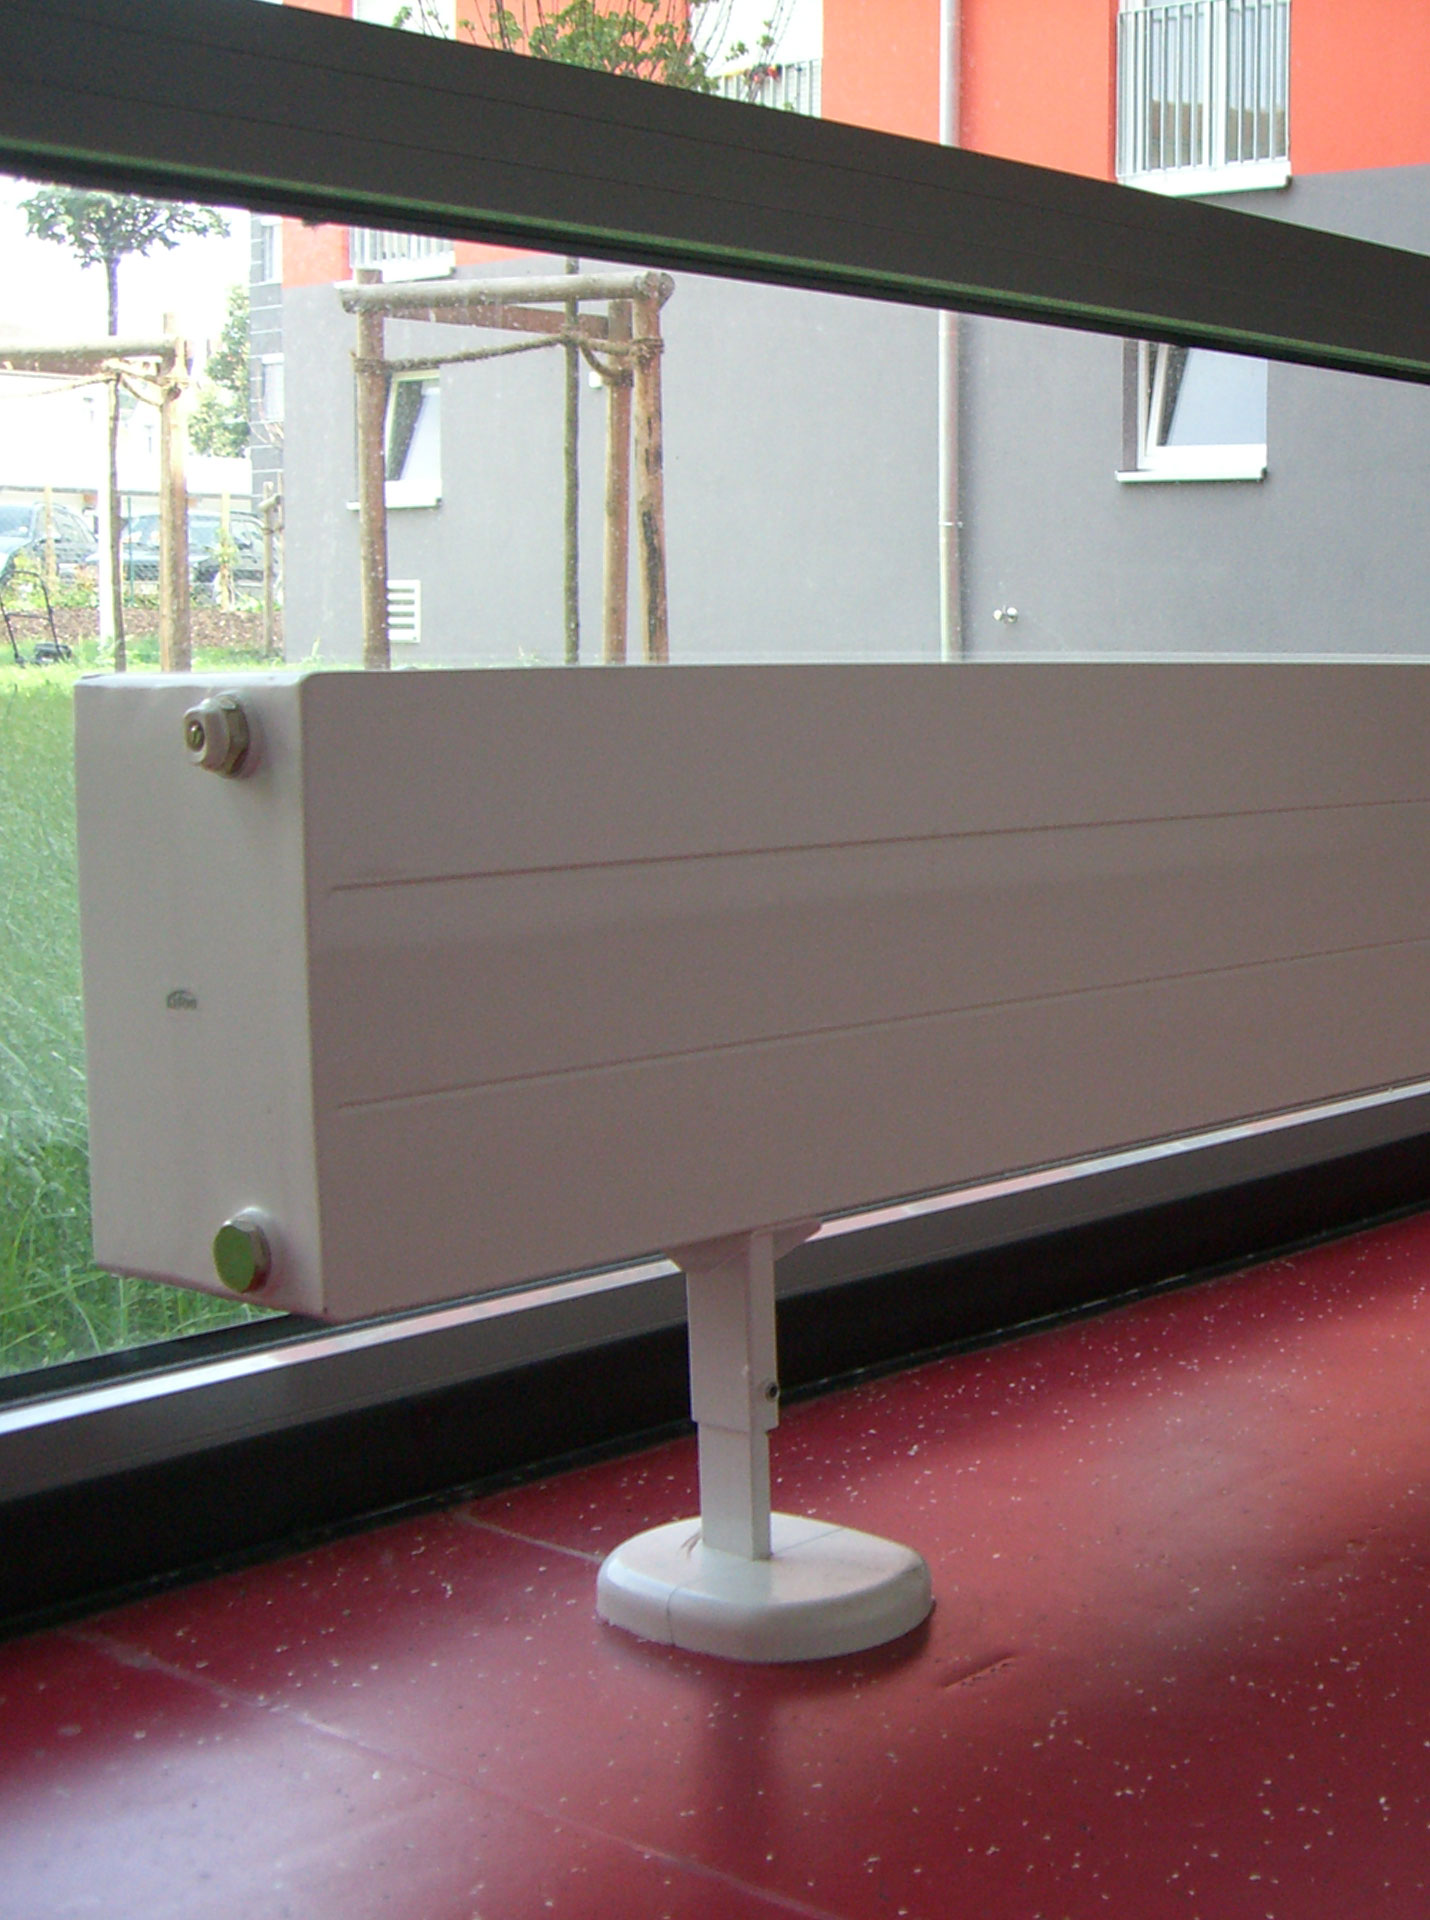 Detailed view of radiator at Deggendorf student campus, Kermi references